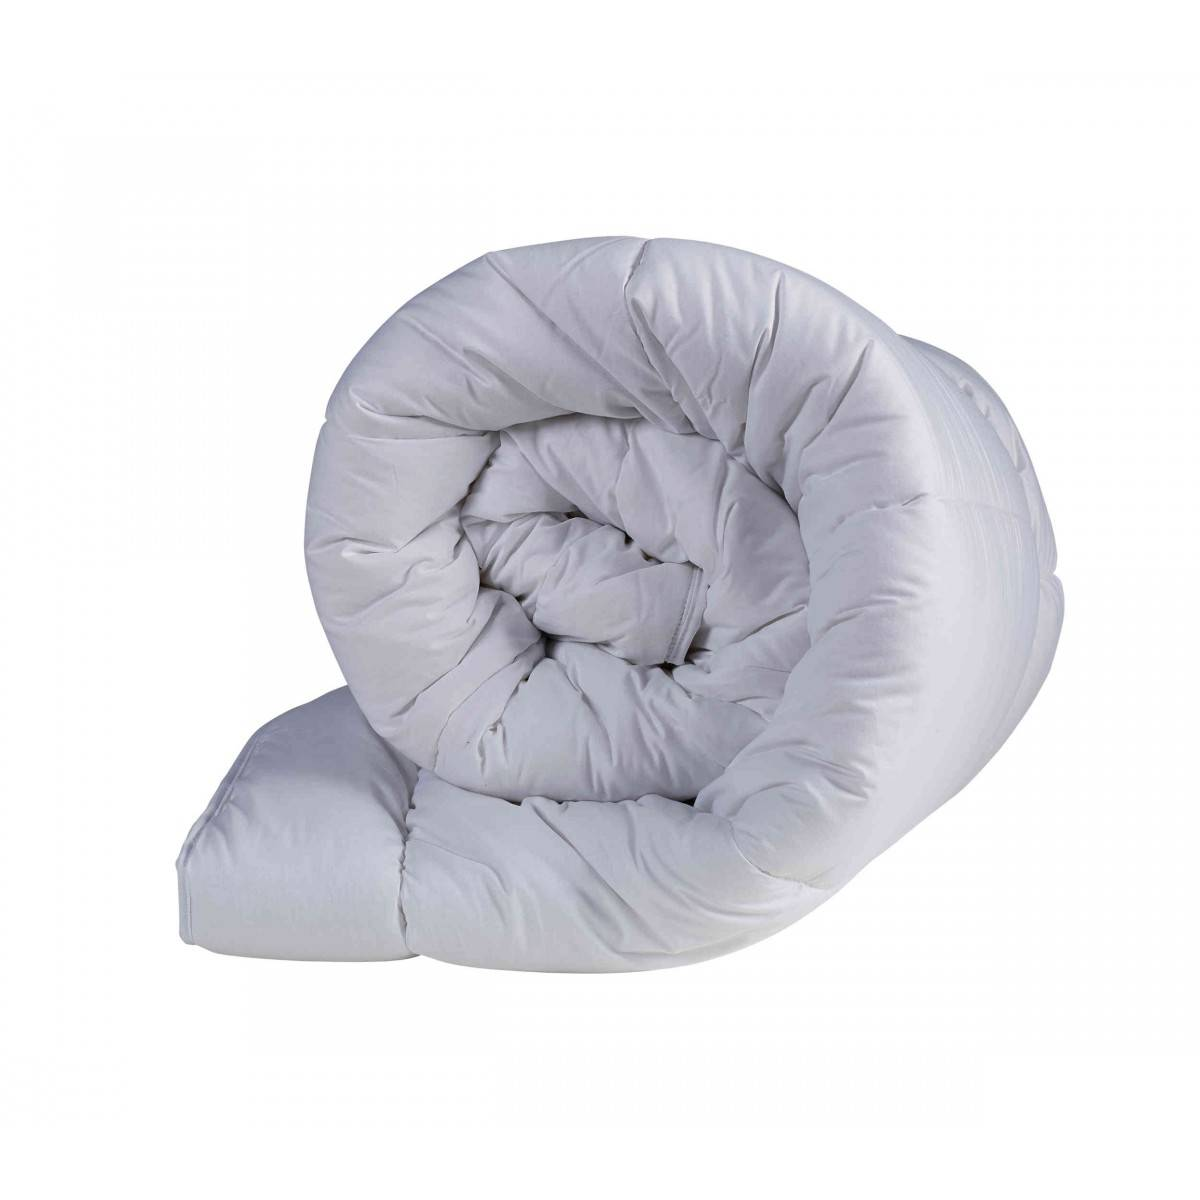 Someo Couette hiver anti-acariens 600g 240x220